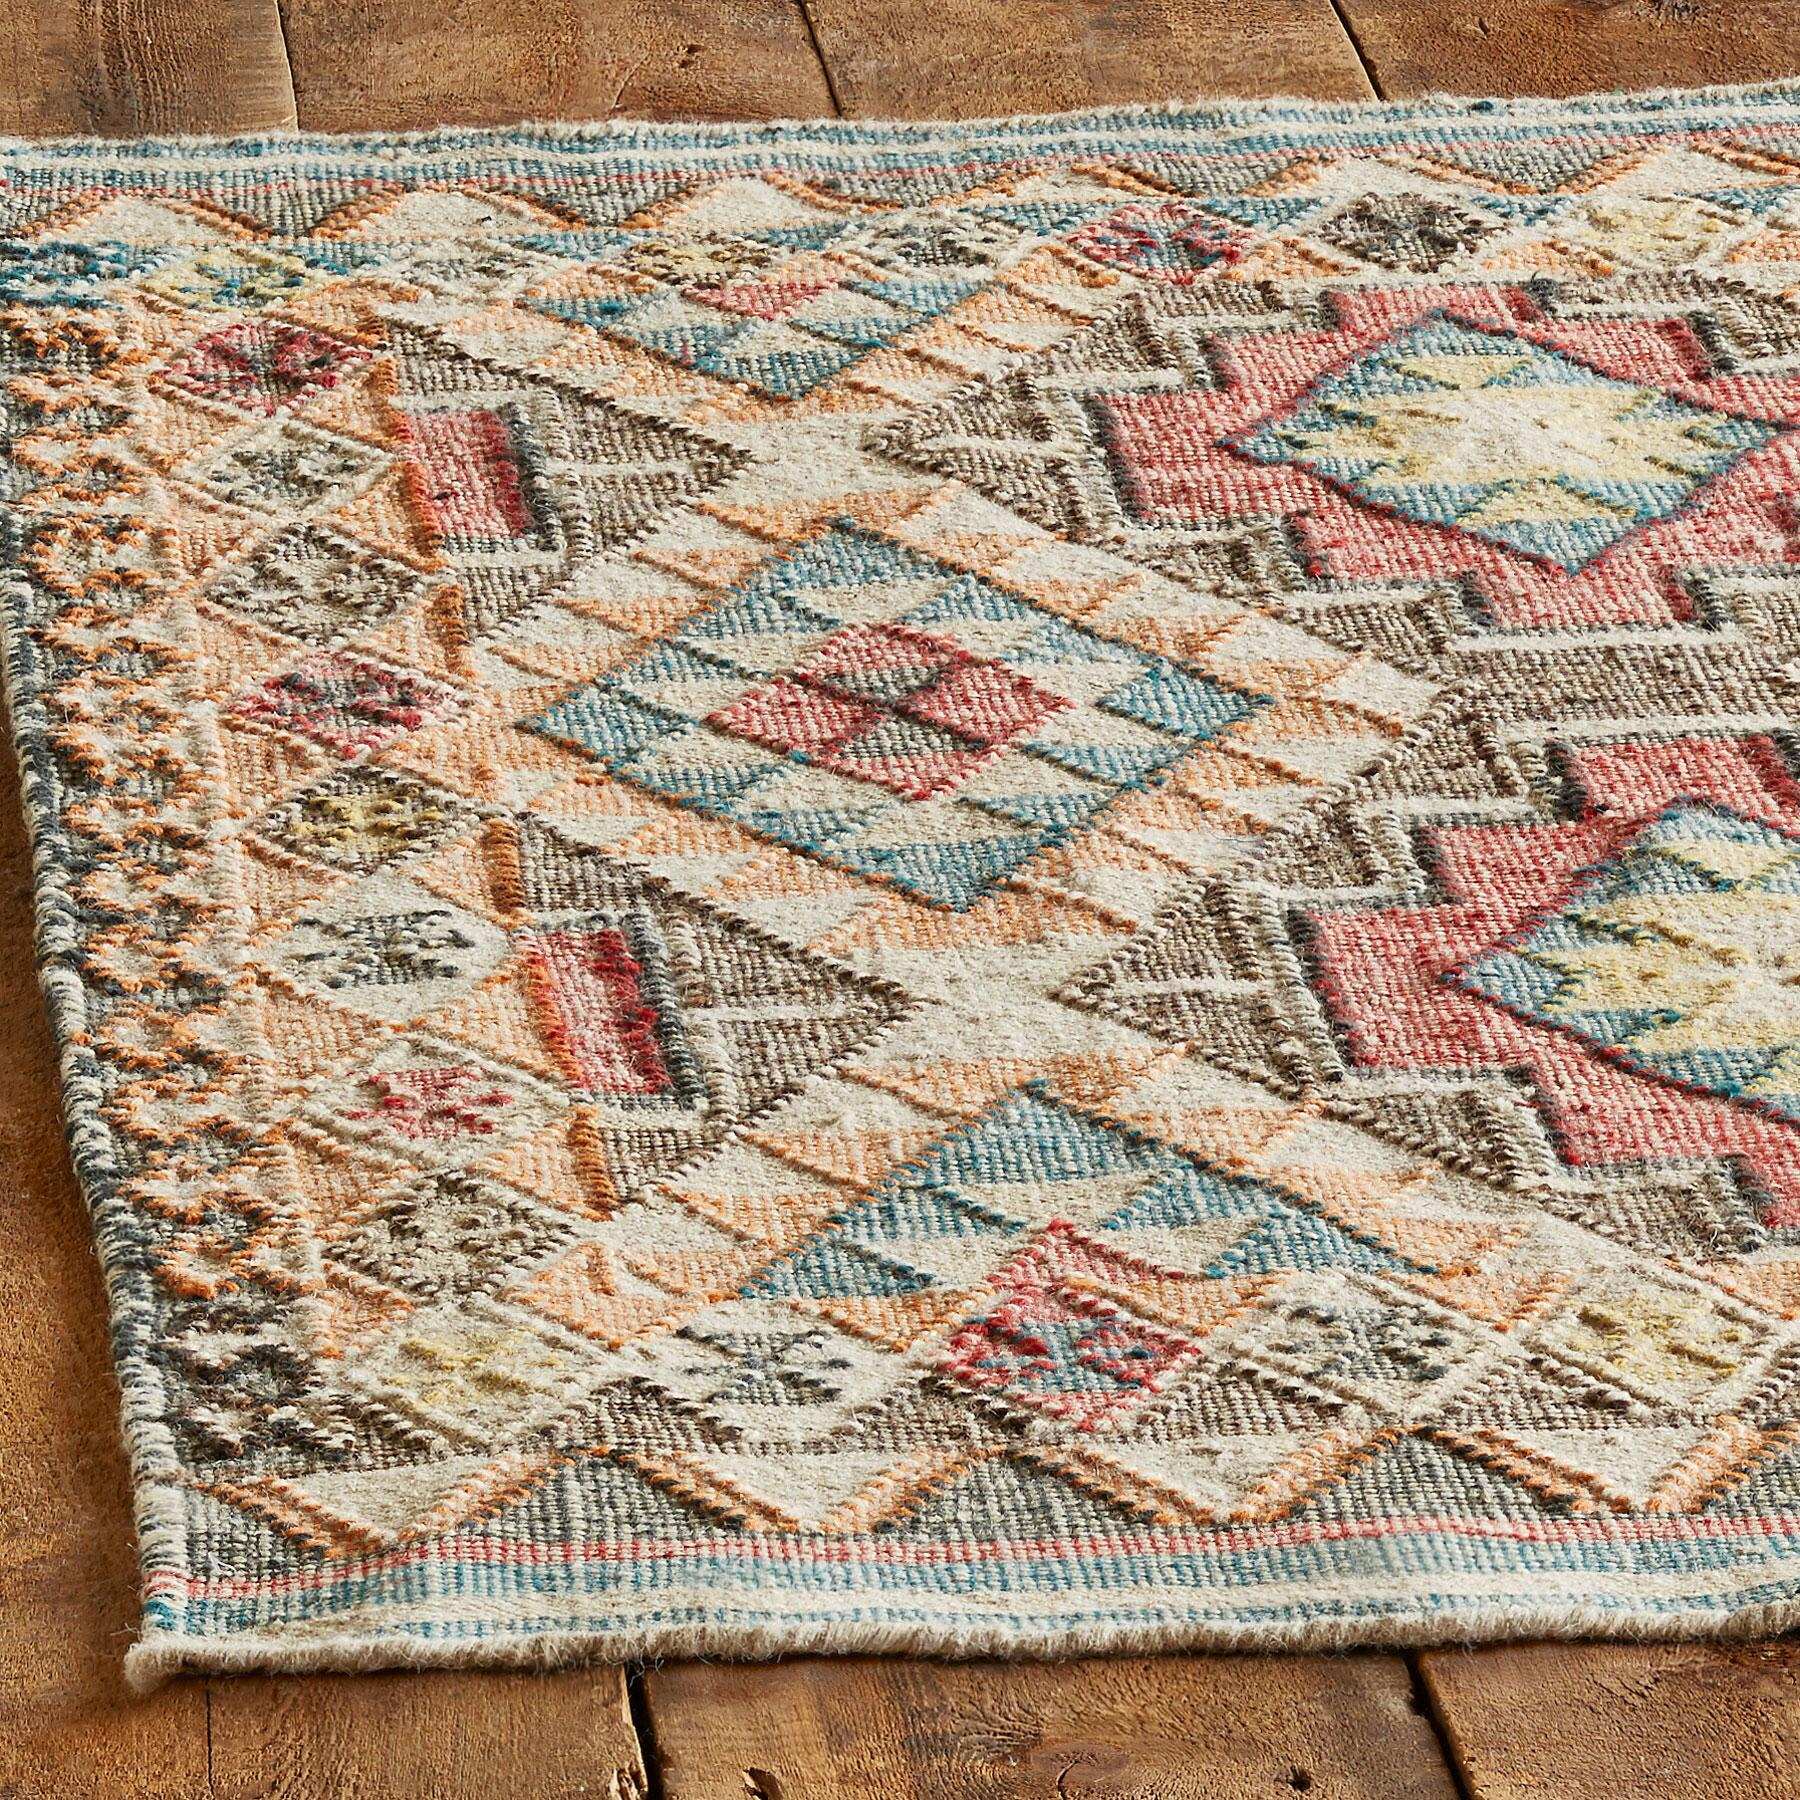 FADED DIAMONDS KILIM RUG - SM: View 2